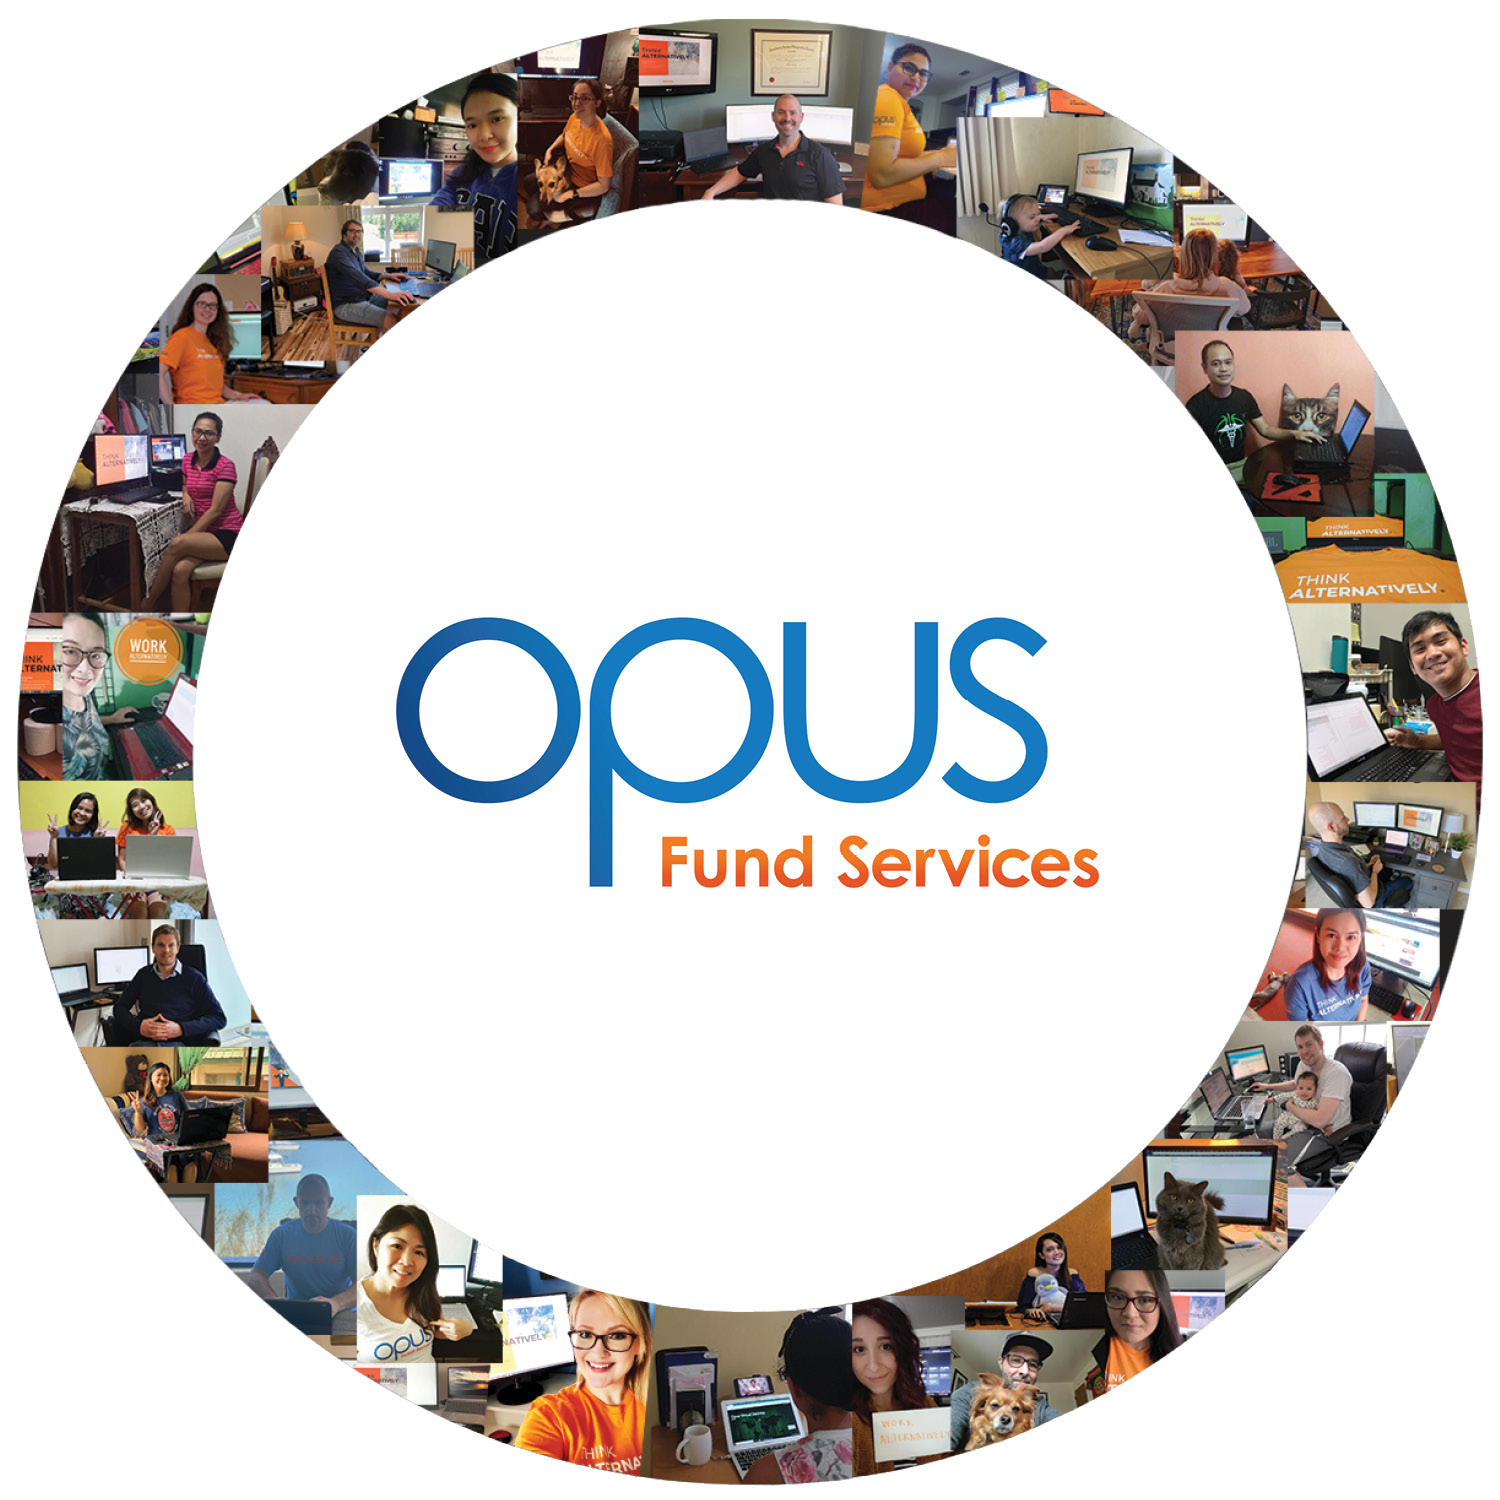 Opus logo surrounded by a circular collage of photos of Opus employees working from home.